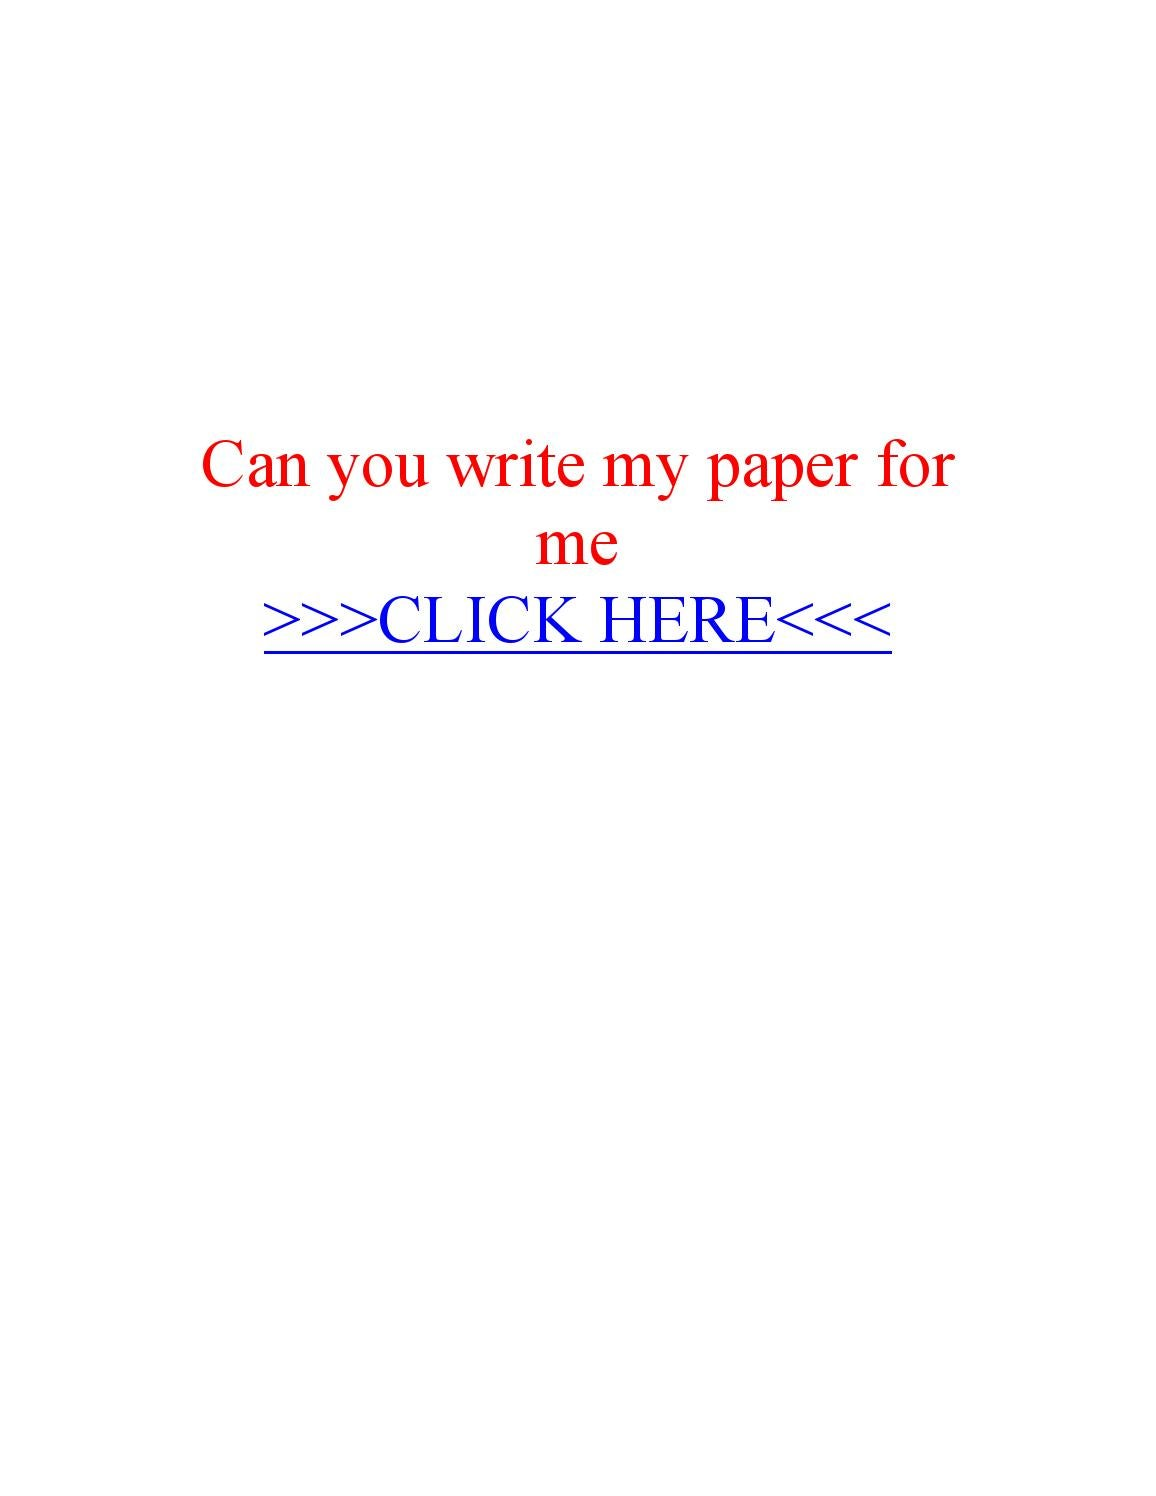 Will you write my essay for me